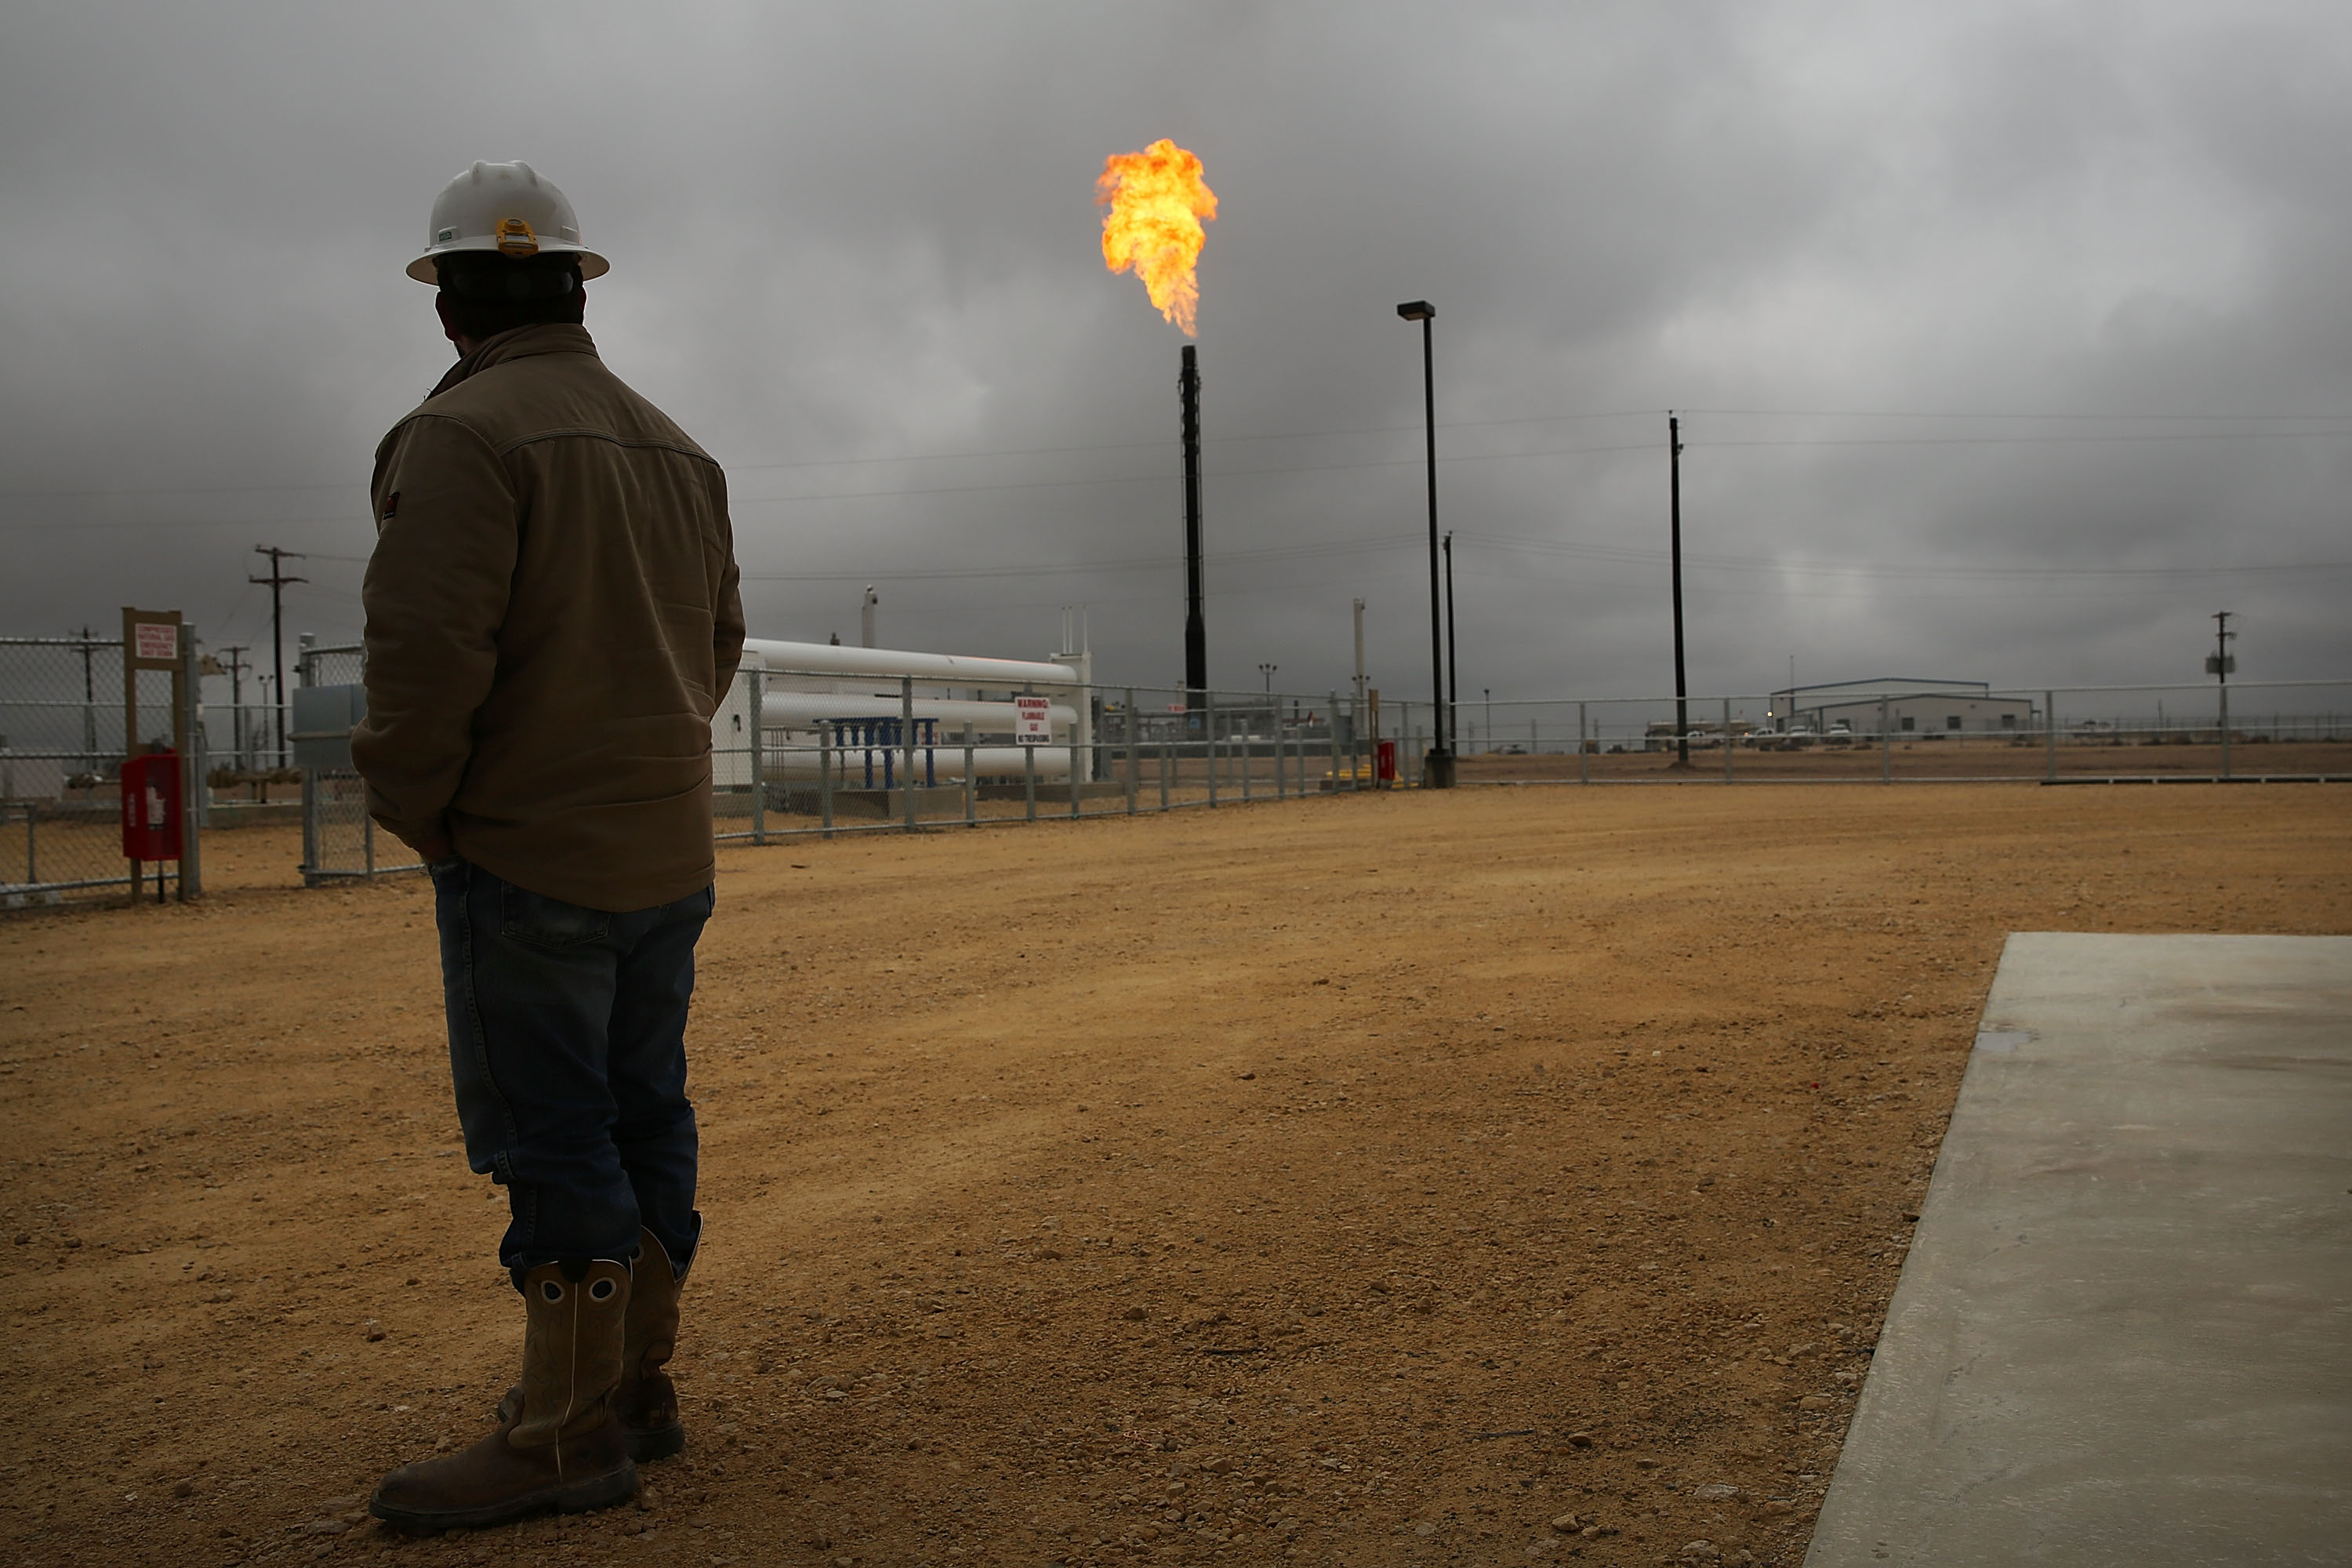 Flared natural gas is burned off at the Deadwood natural gas plant in Garden City, TX on Feb. 5, 2015.